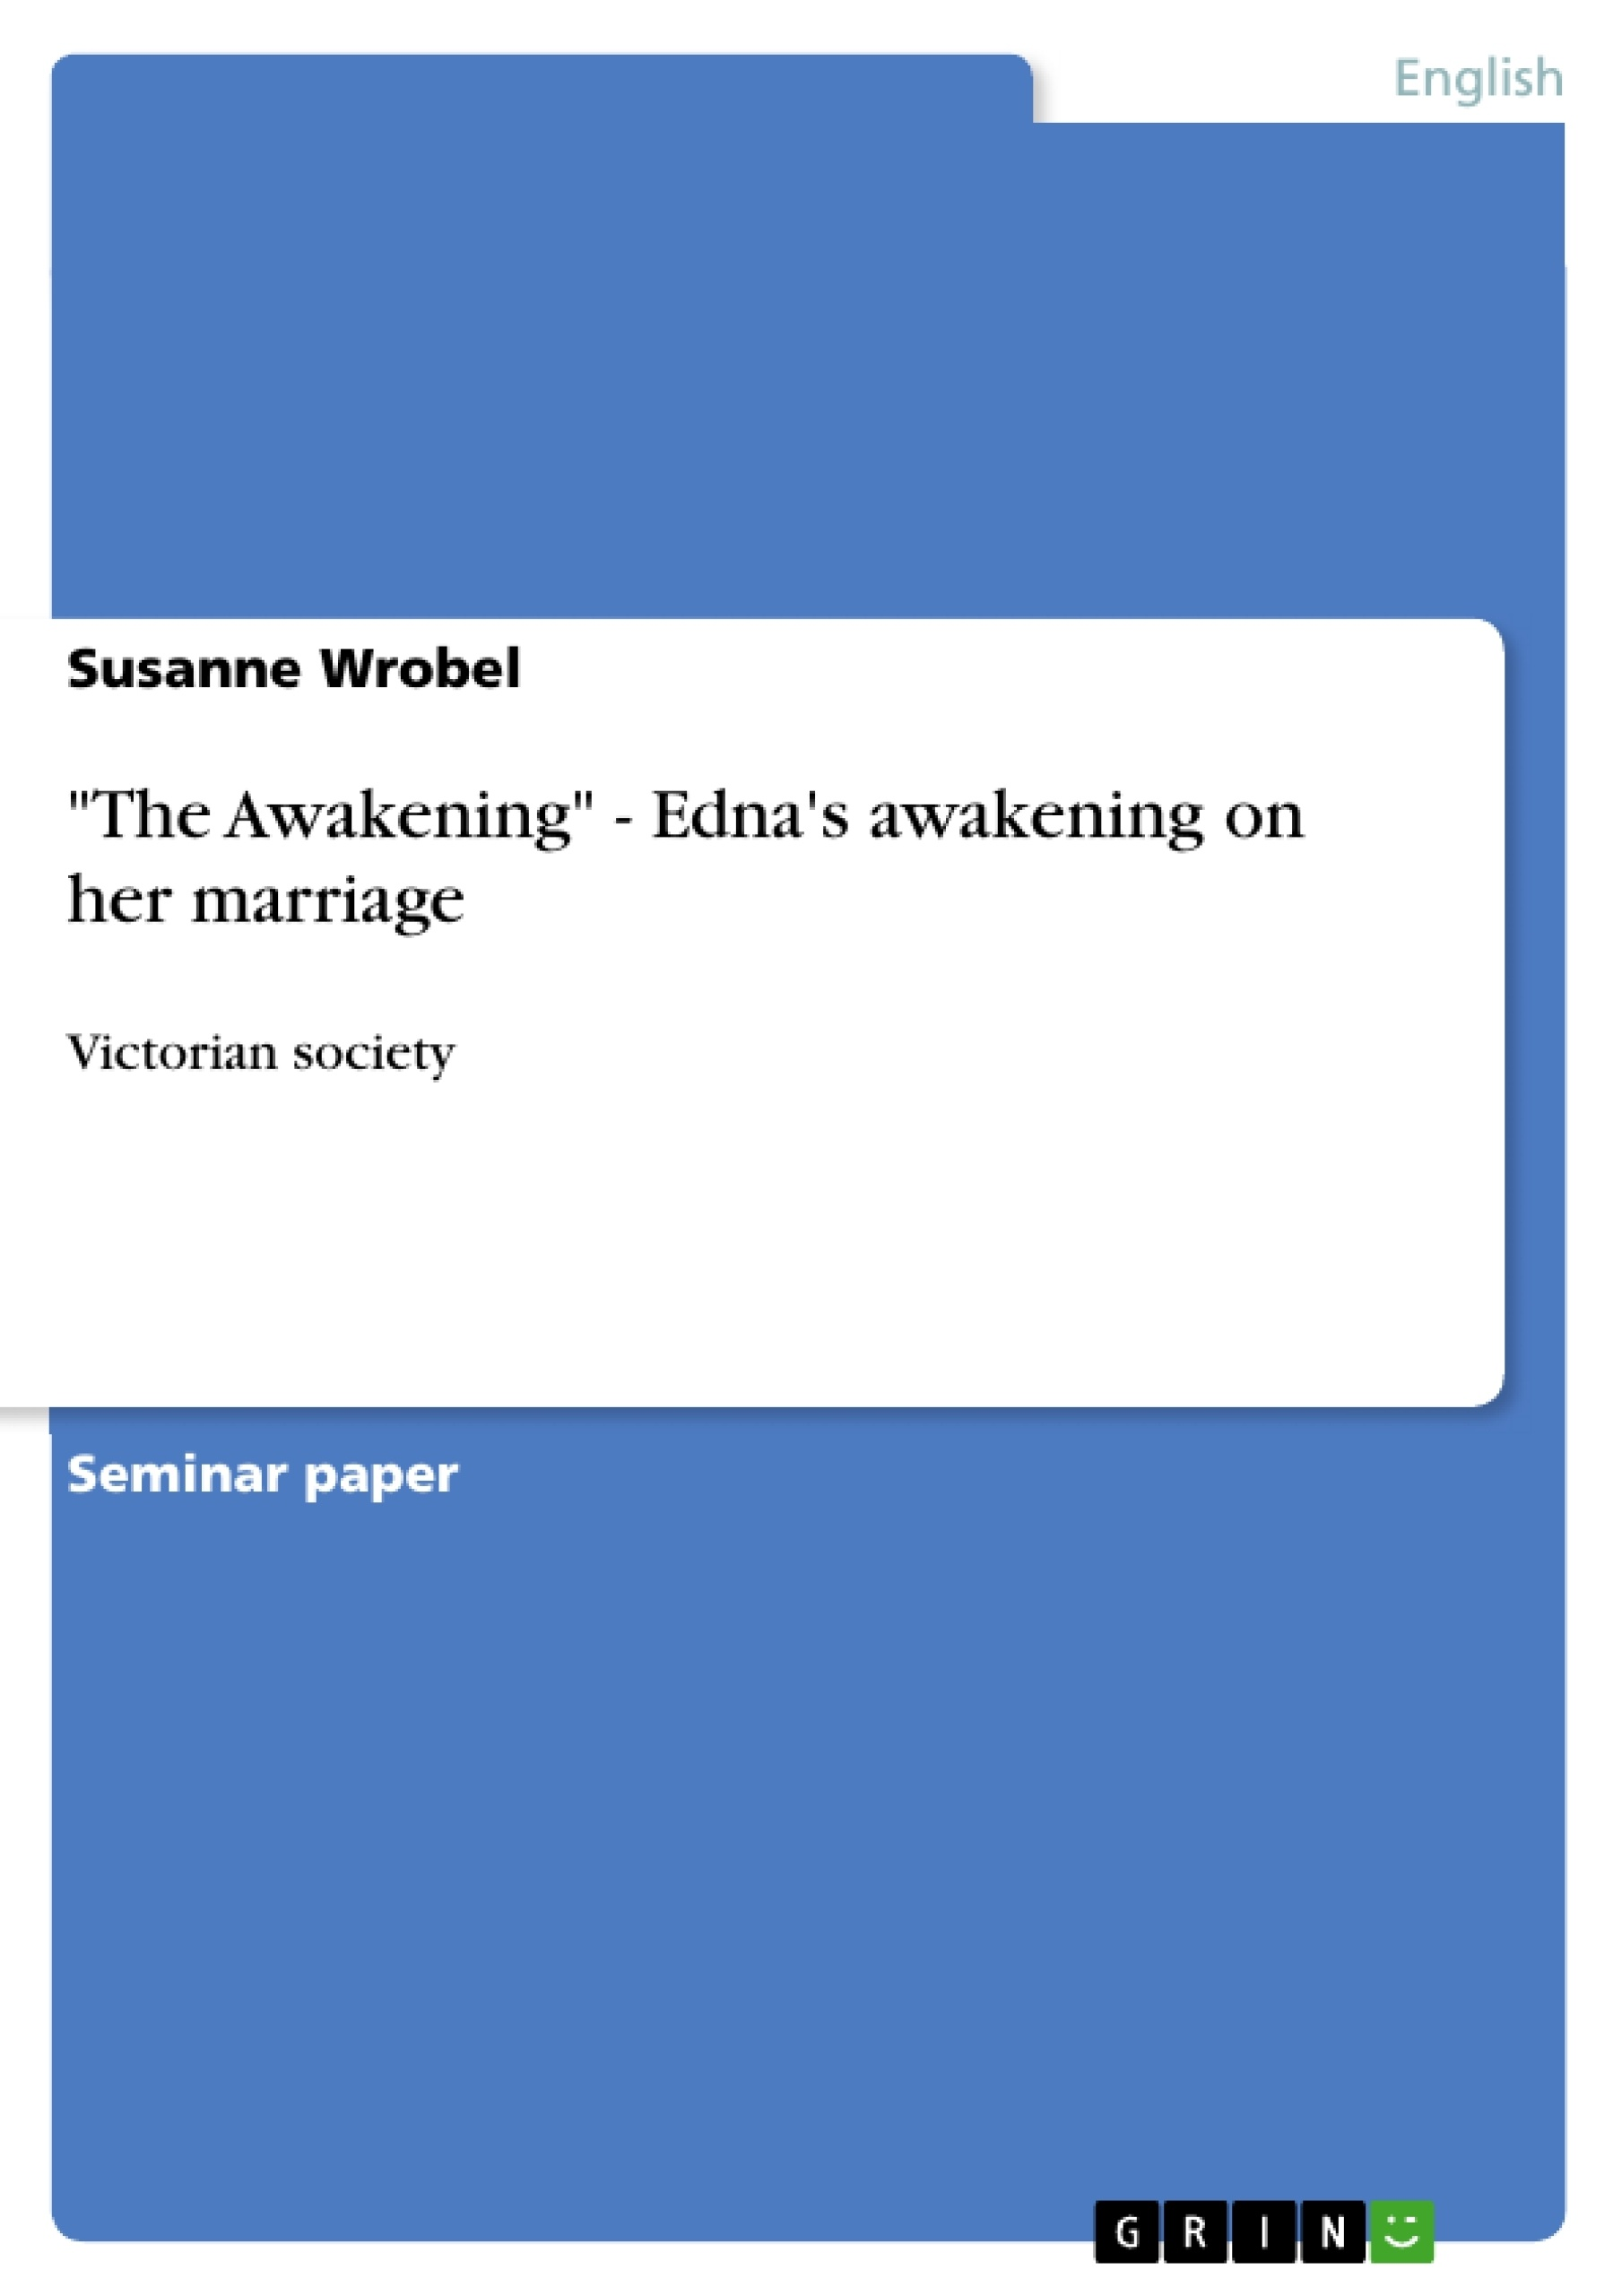 the awakening edna s awakening on her marriage publish your the awakening edna s awakening on her marriage publish your master s thesis bachelor s thesis essay or term paper